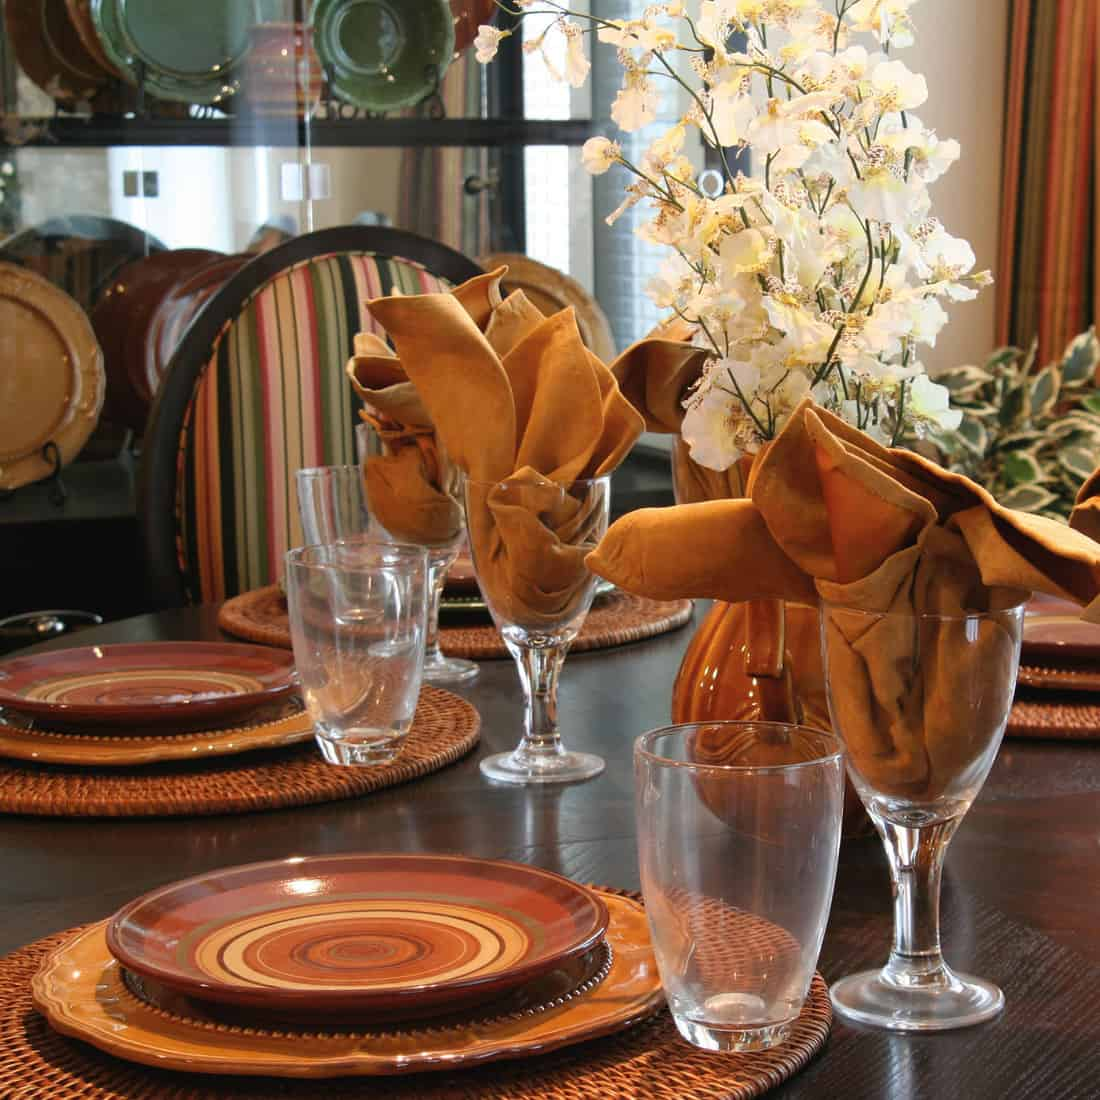 thanksgiving table setup with round shaped placemats